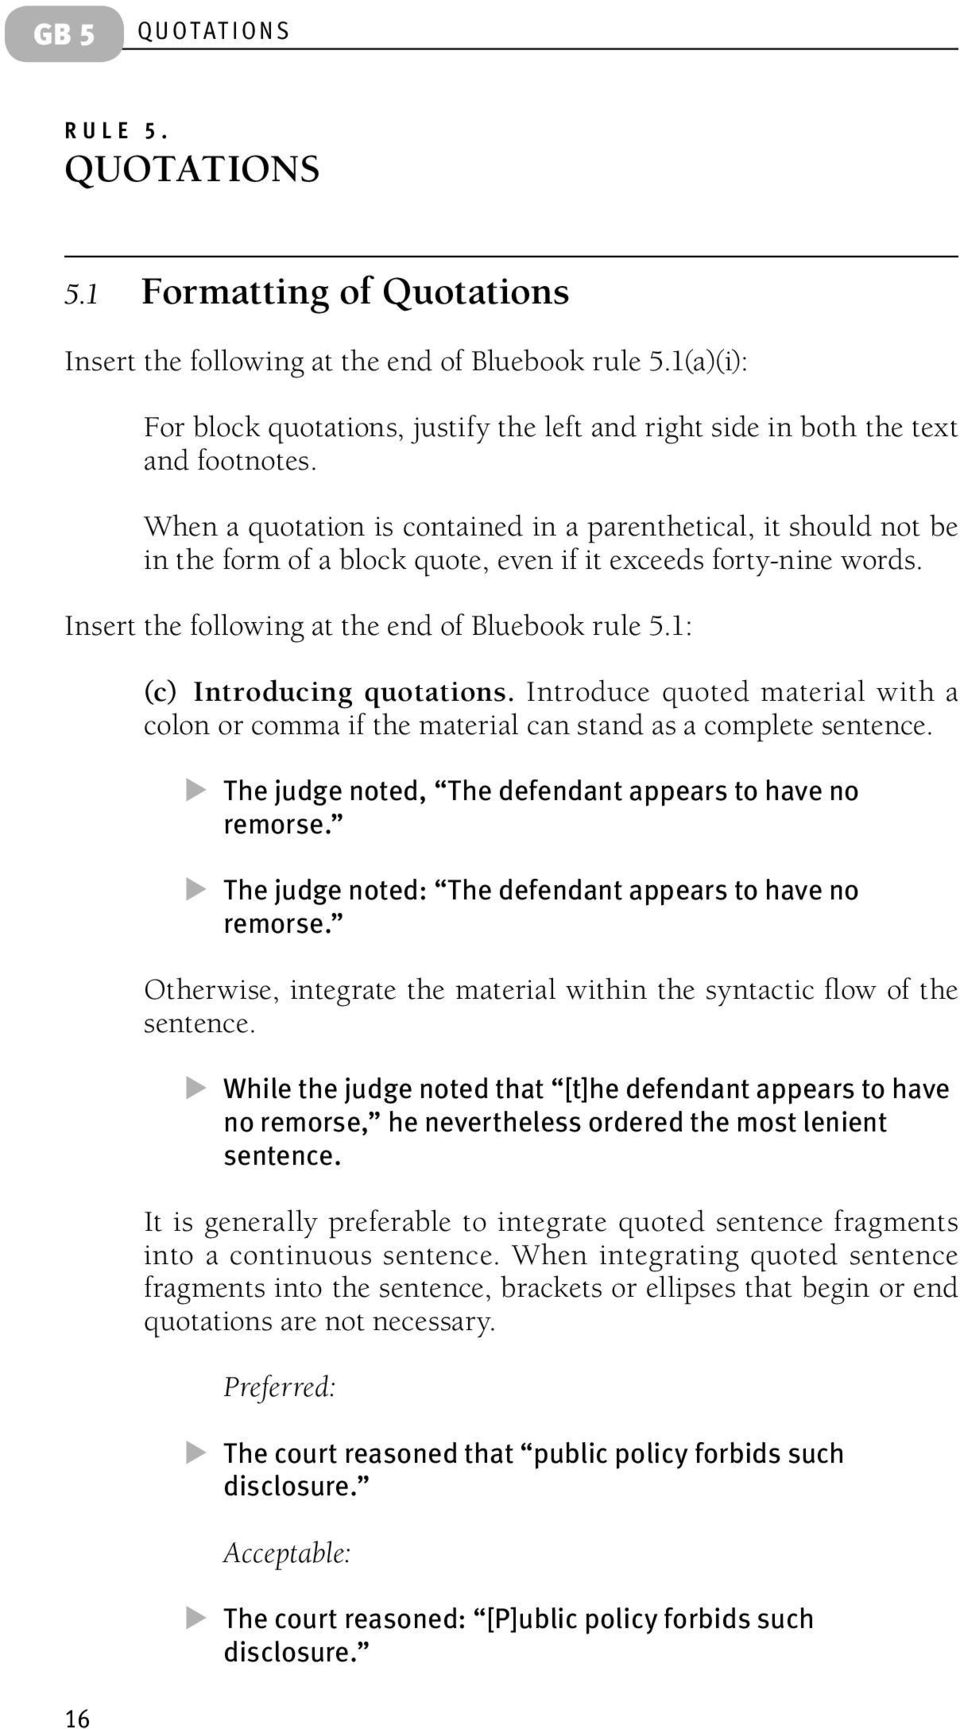 When a quotation is contained in a parenthetical, it should not be in the form of a block quote, even if it exceeds forty-nine words. Insert the following at the end of Bluebook rule 5.